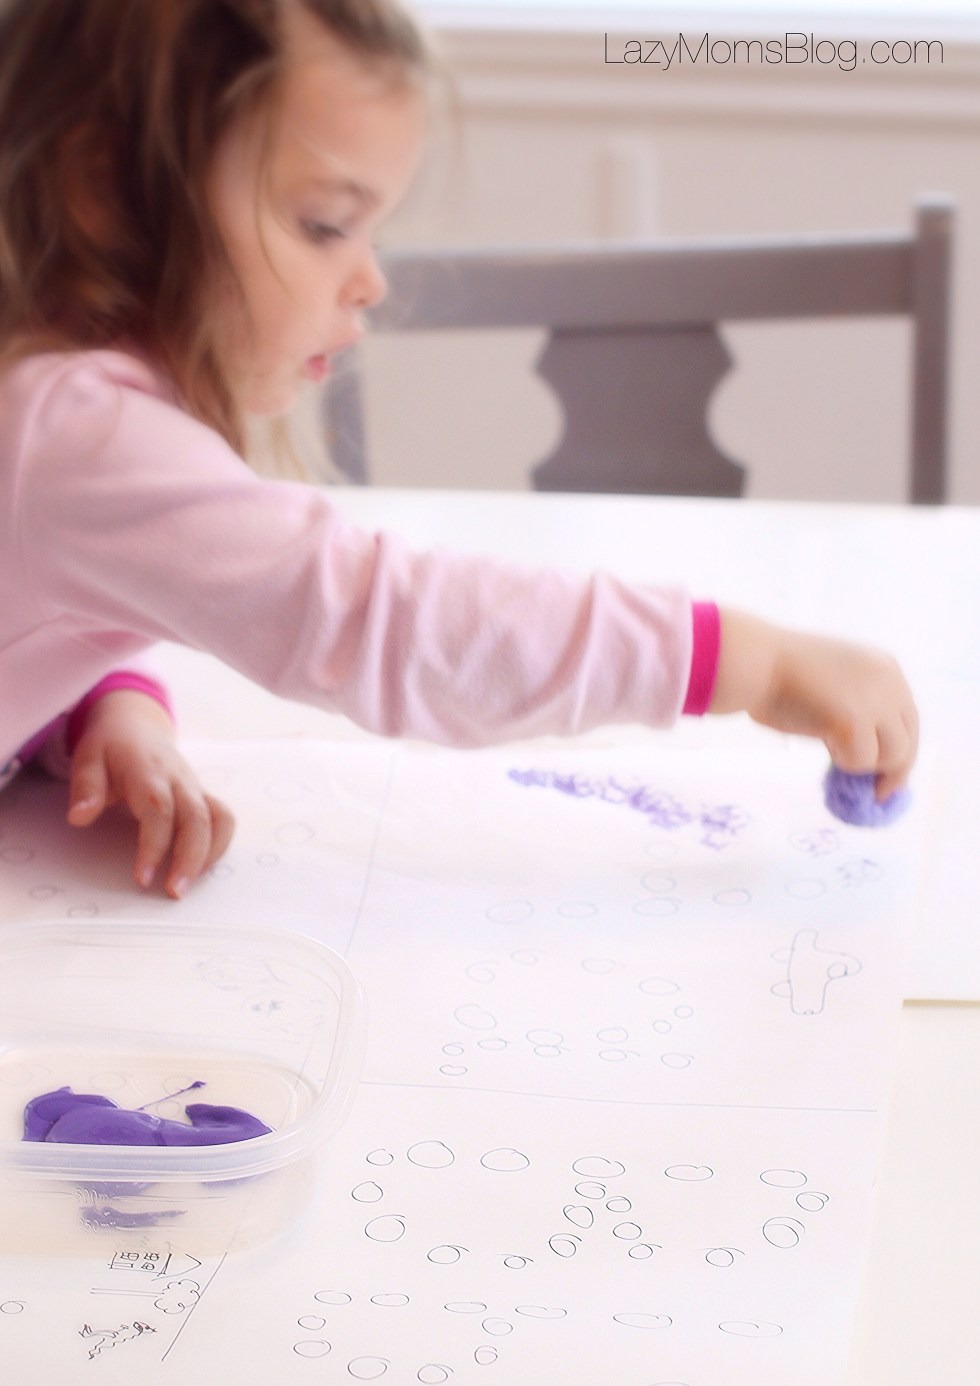 Montessori homeschool: training letters using different materials, like paintbrush or pompoms, teaches letter recognition and shape without being overwhelming for a preschooler.